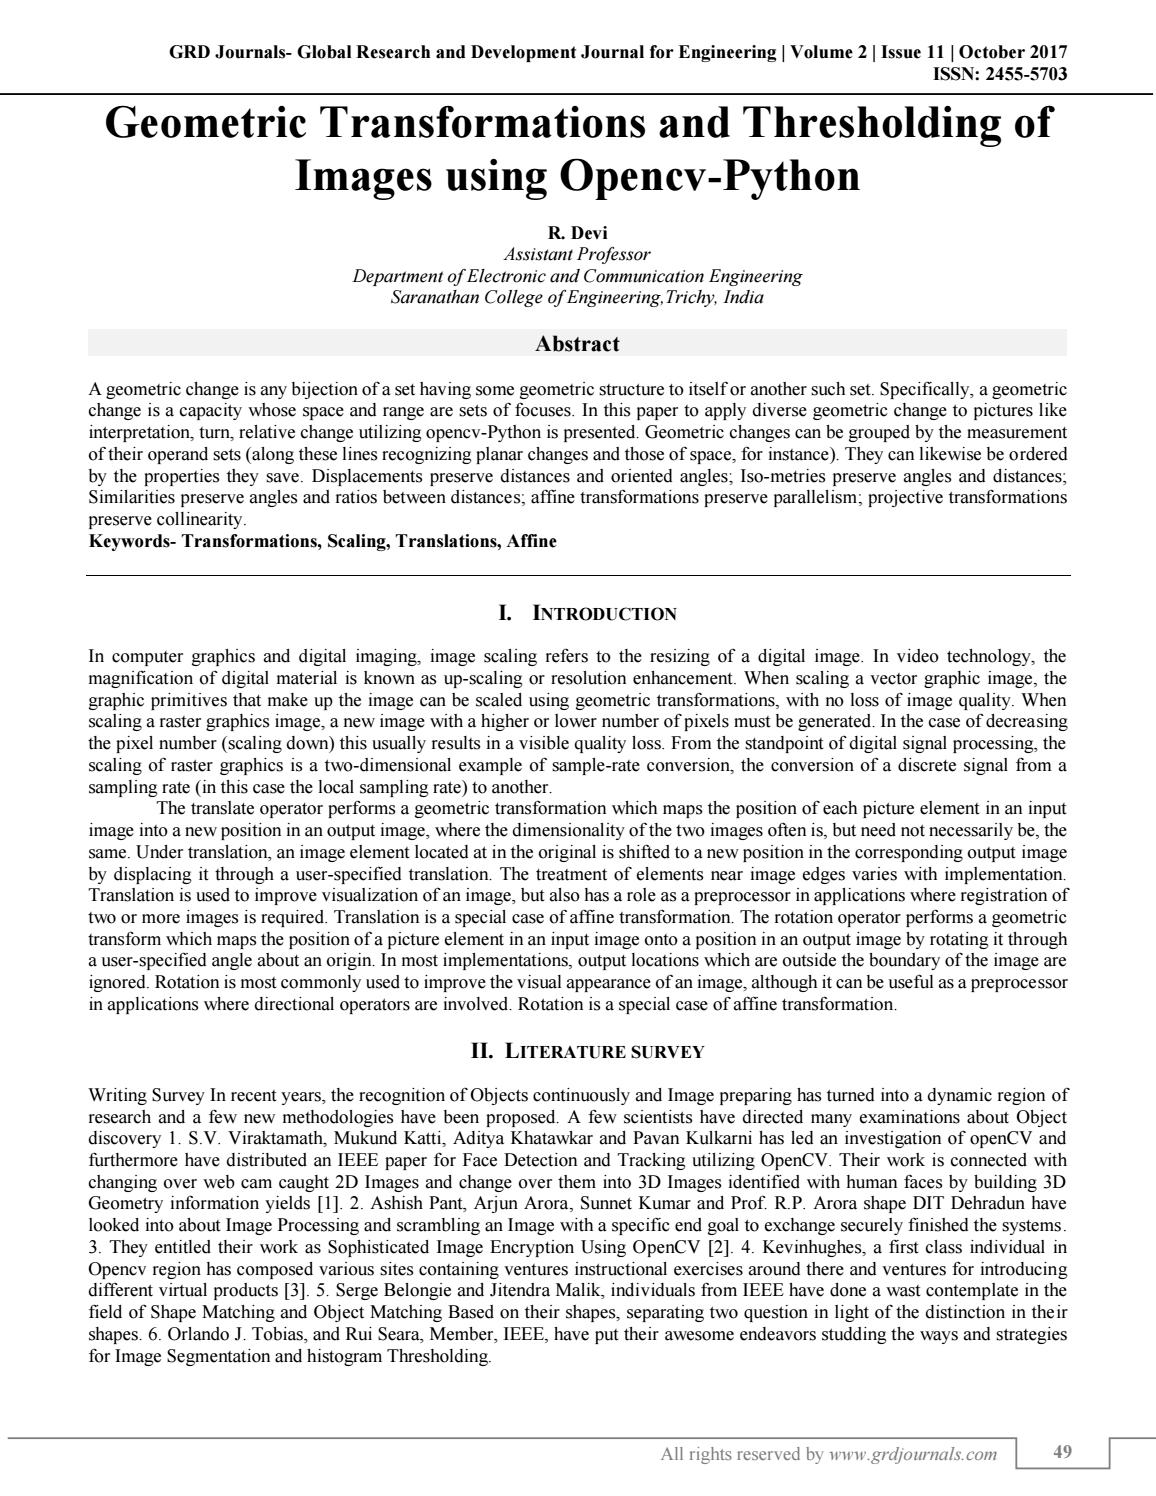 Geomentric Transformations and Thresholding of Images using Opencv